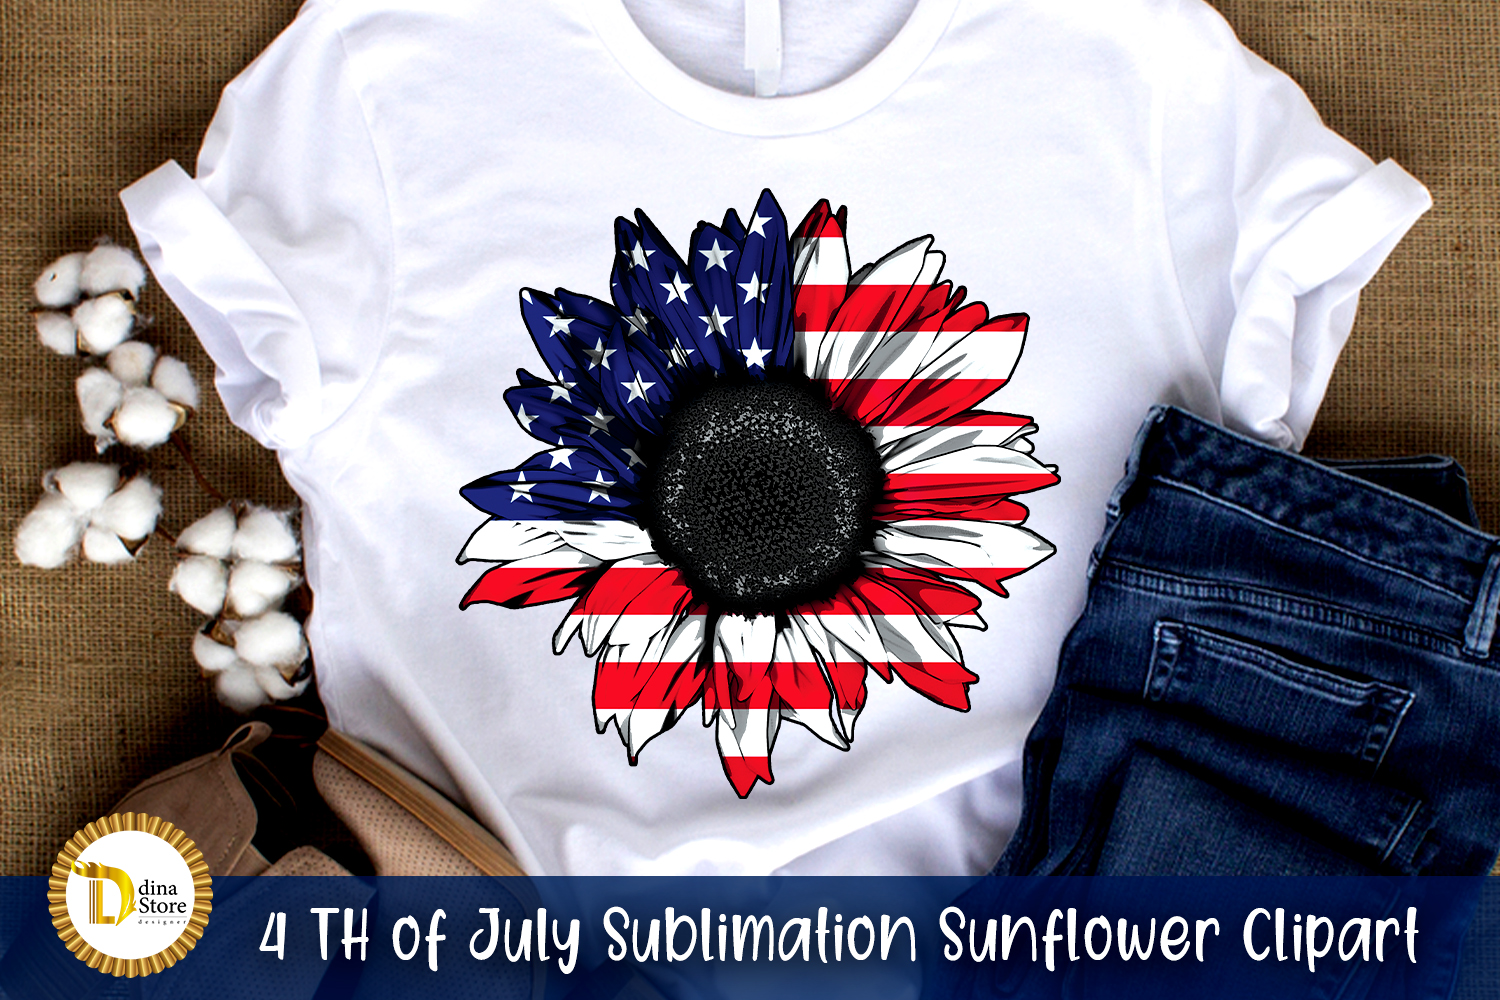 4 Th of July Sublimation Sunflower SVG File